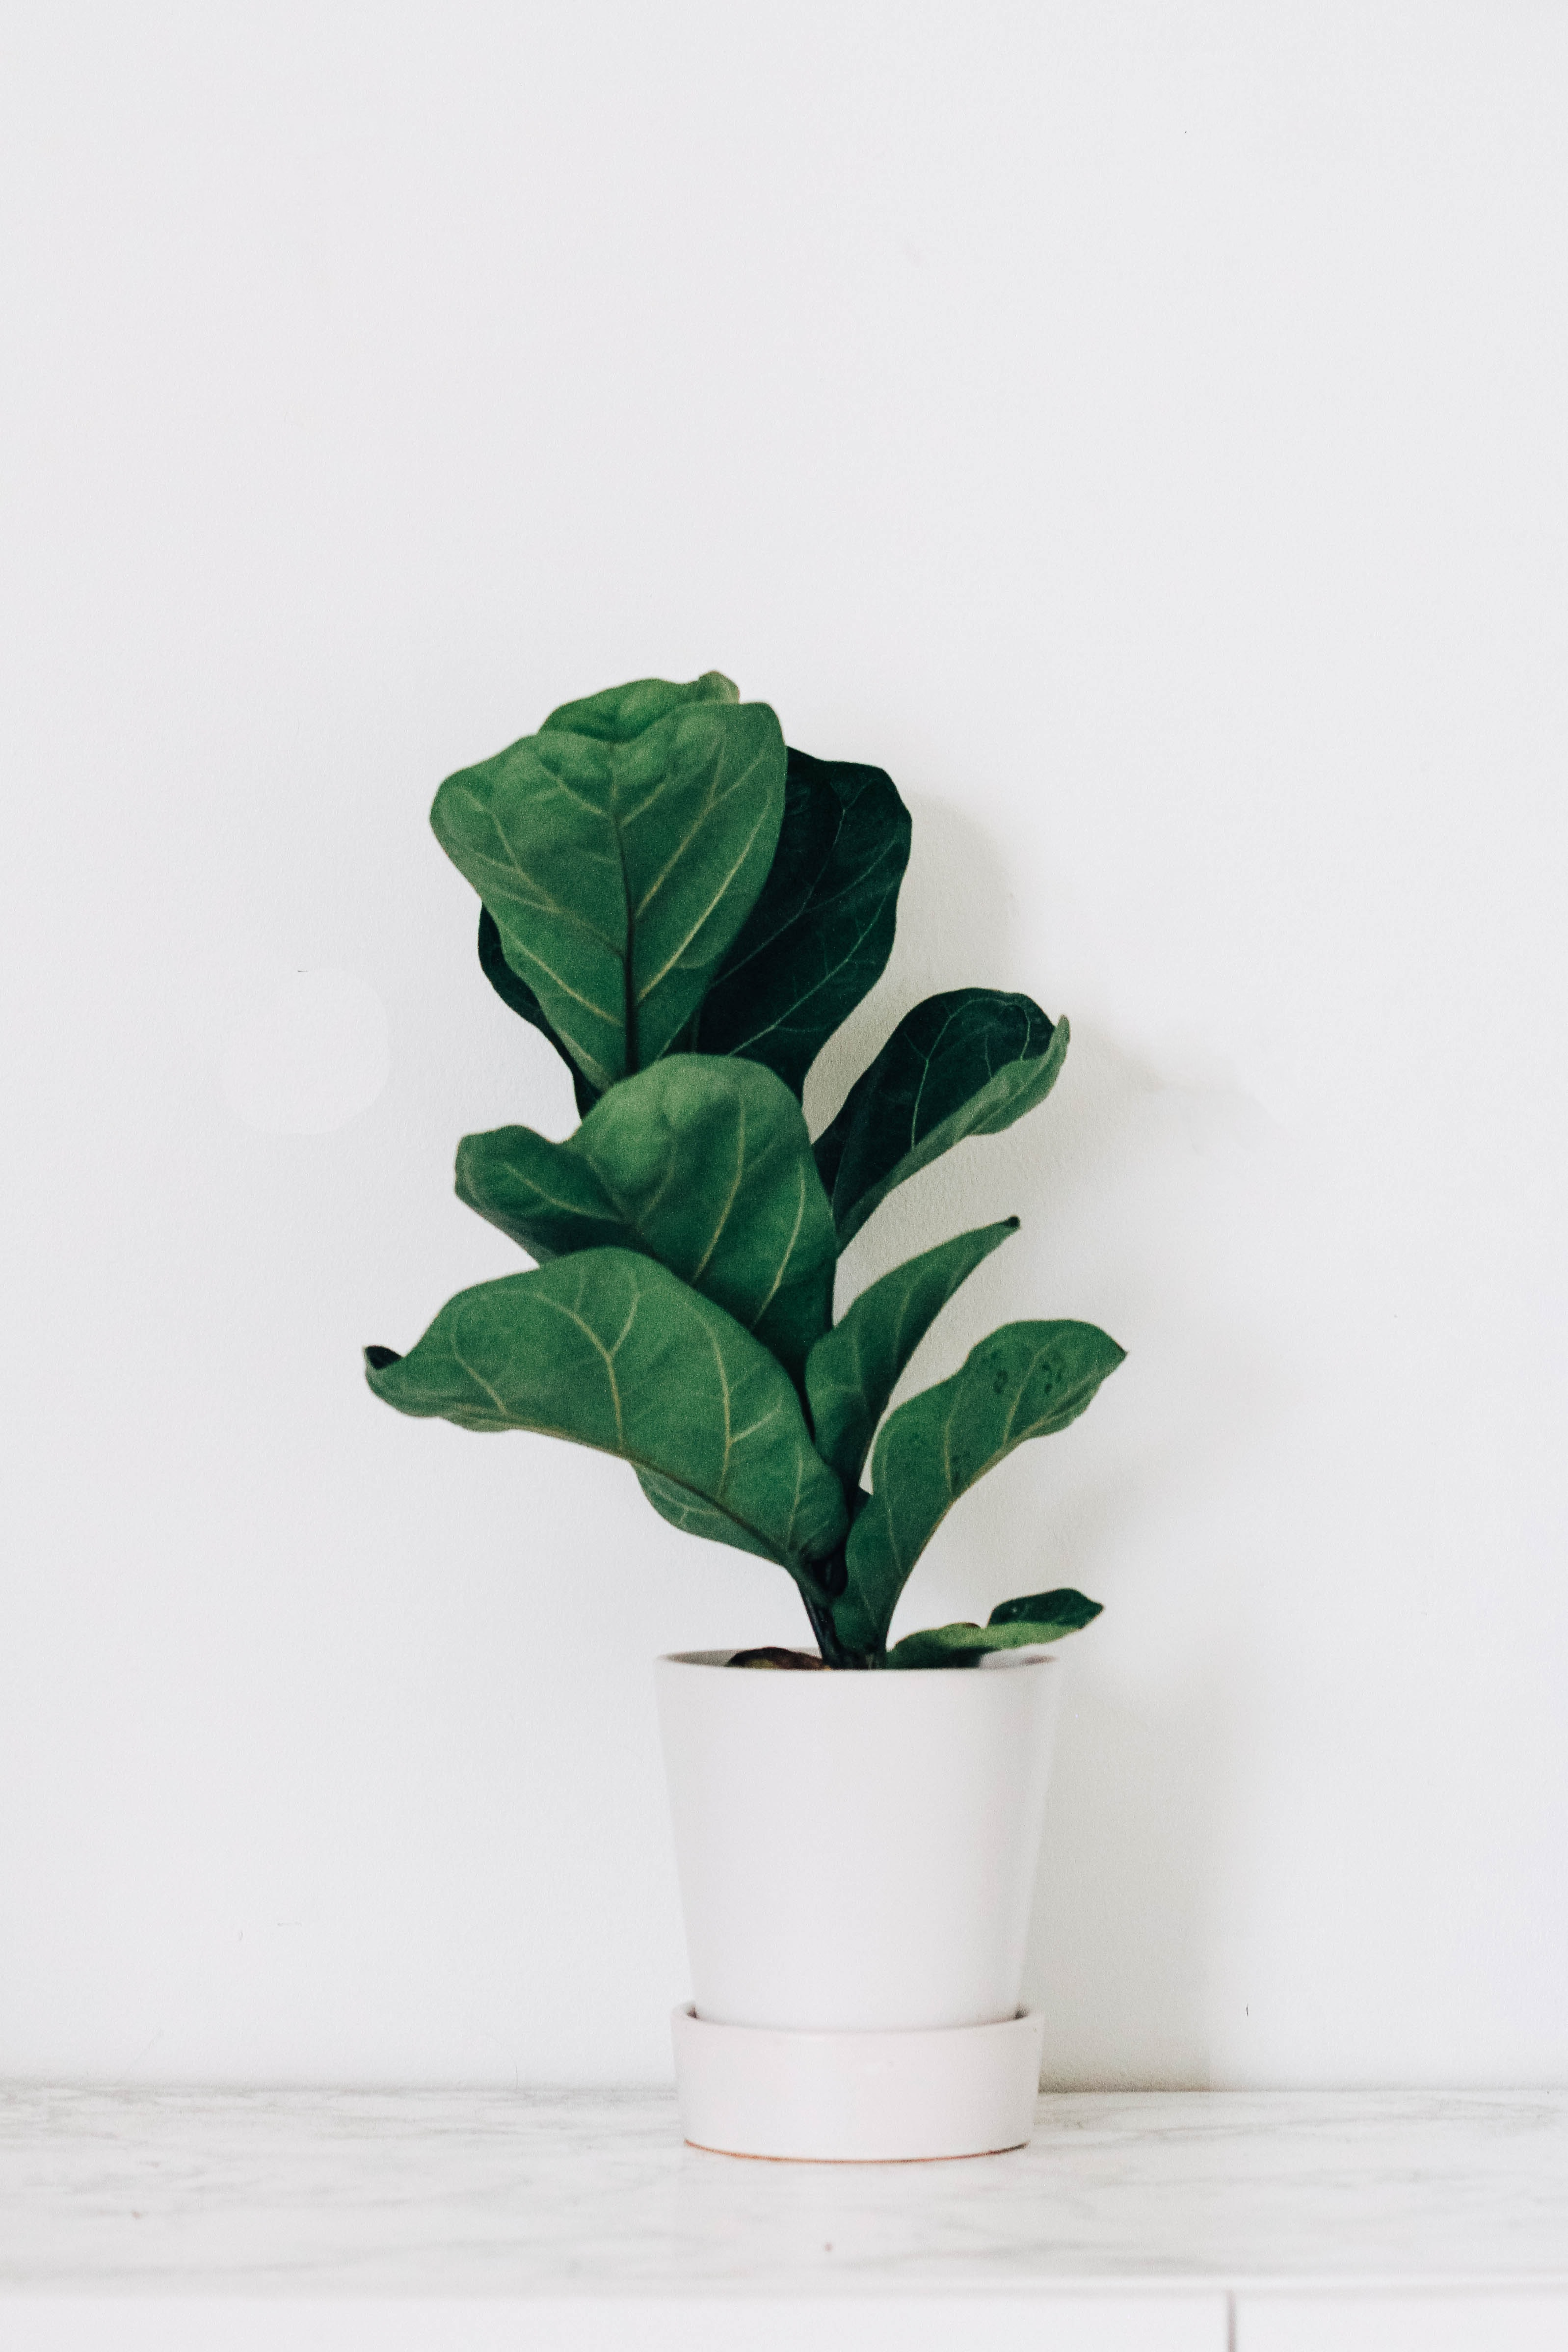 green leaf plant in white ceramic pot